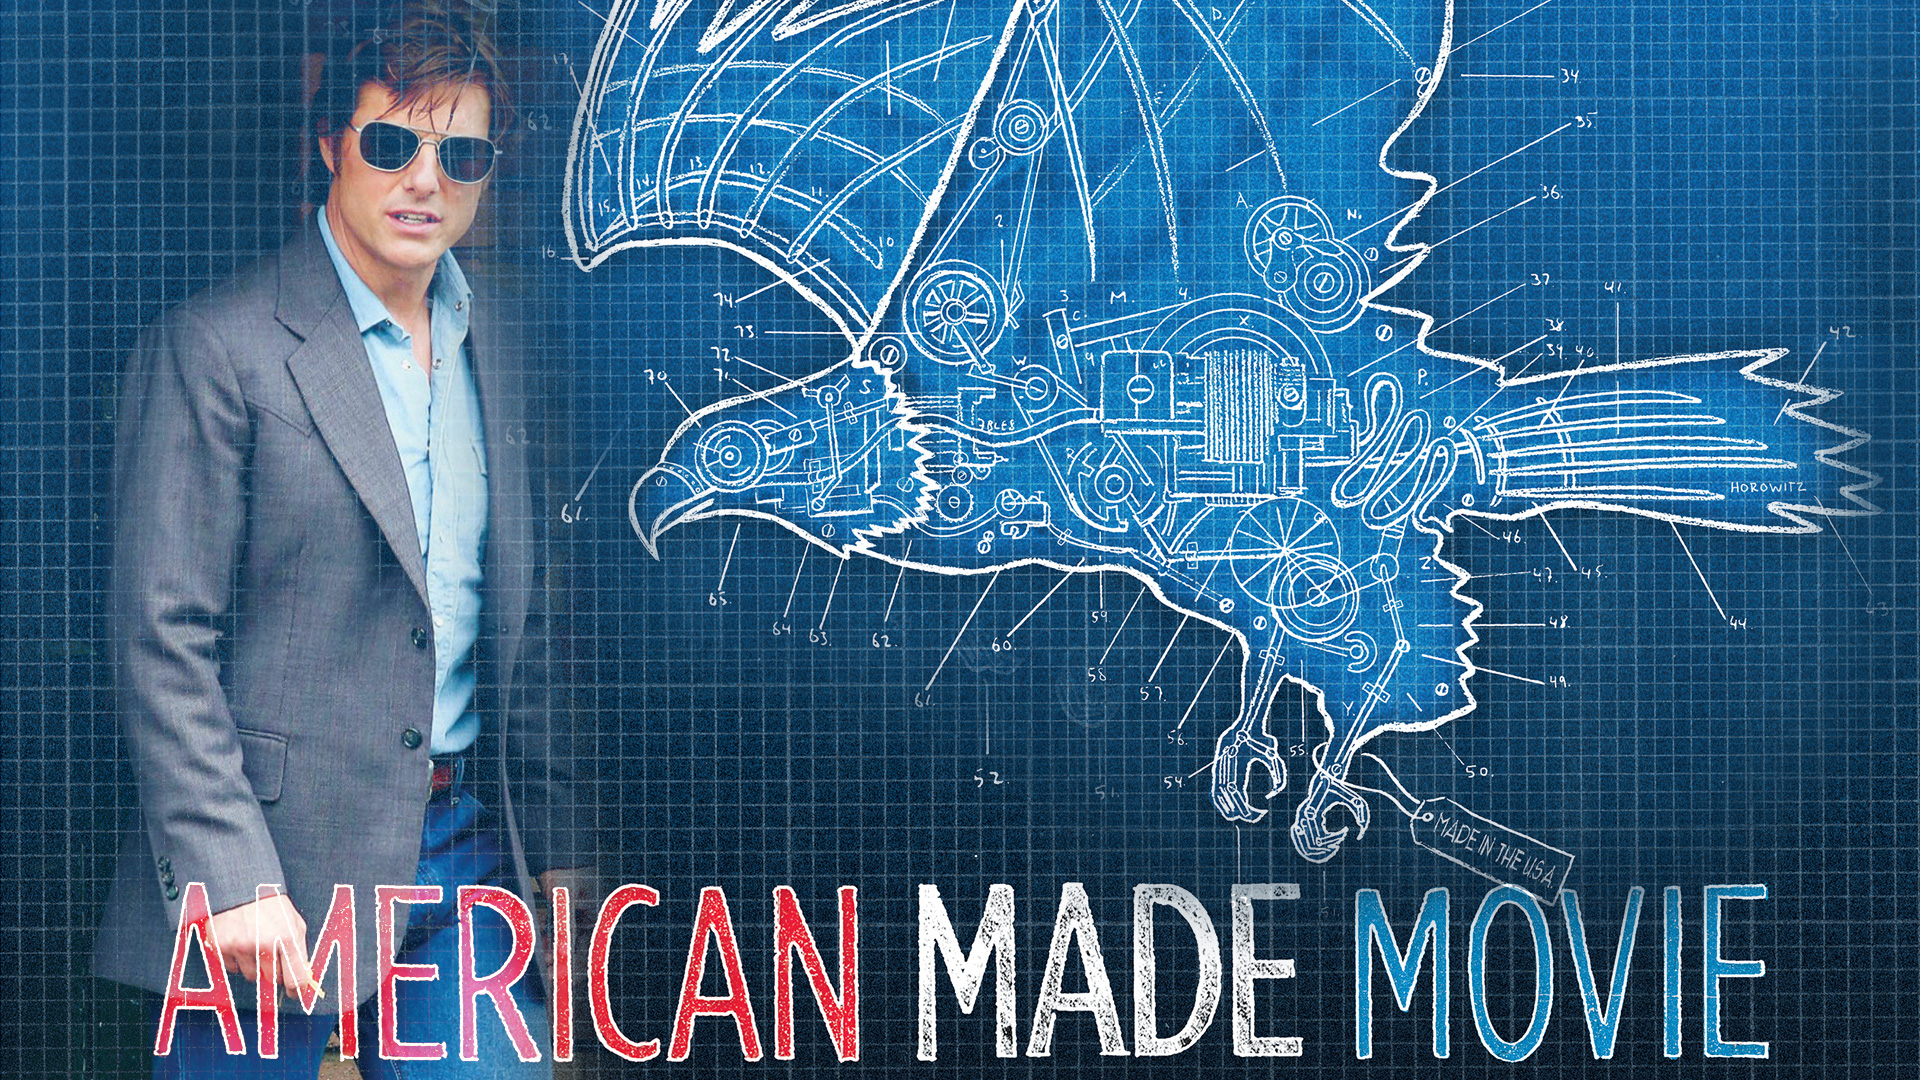 American-Made-movie-wallpaper-HD-film-2017-poster-image